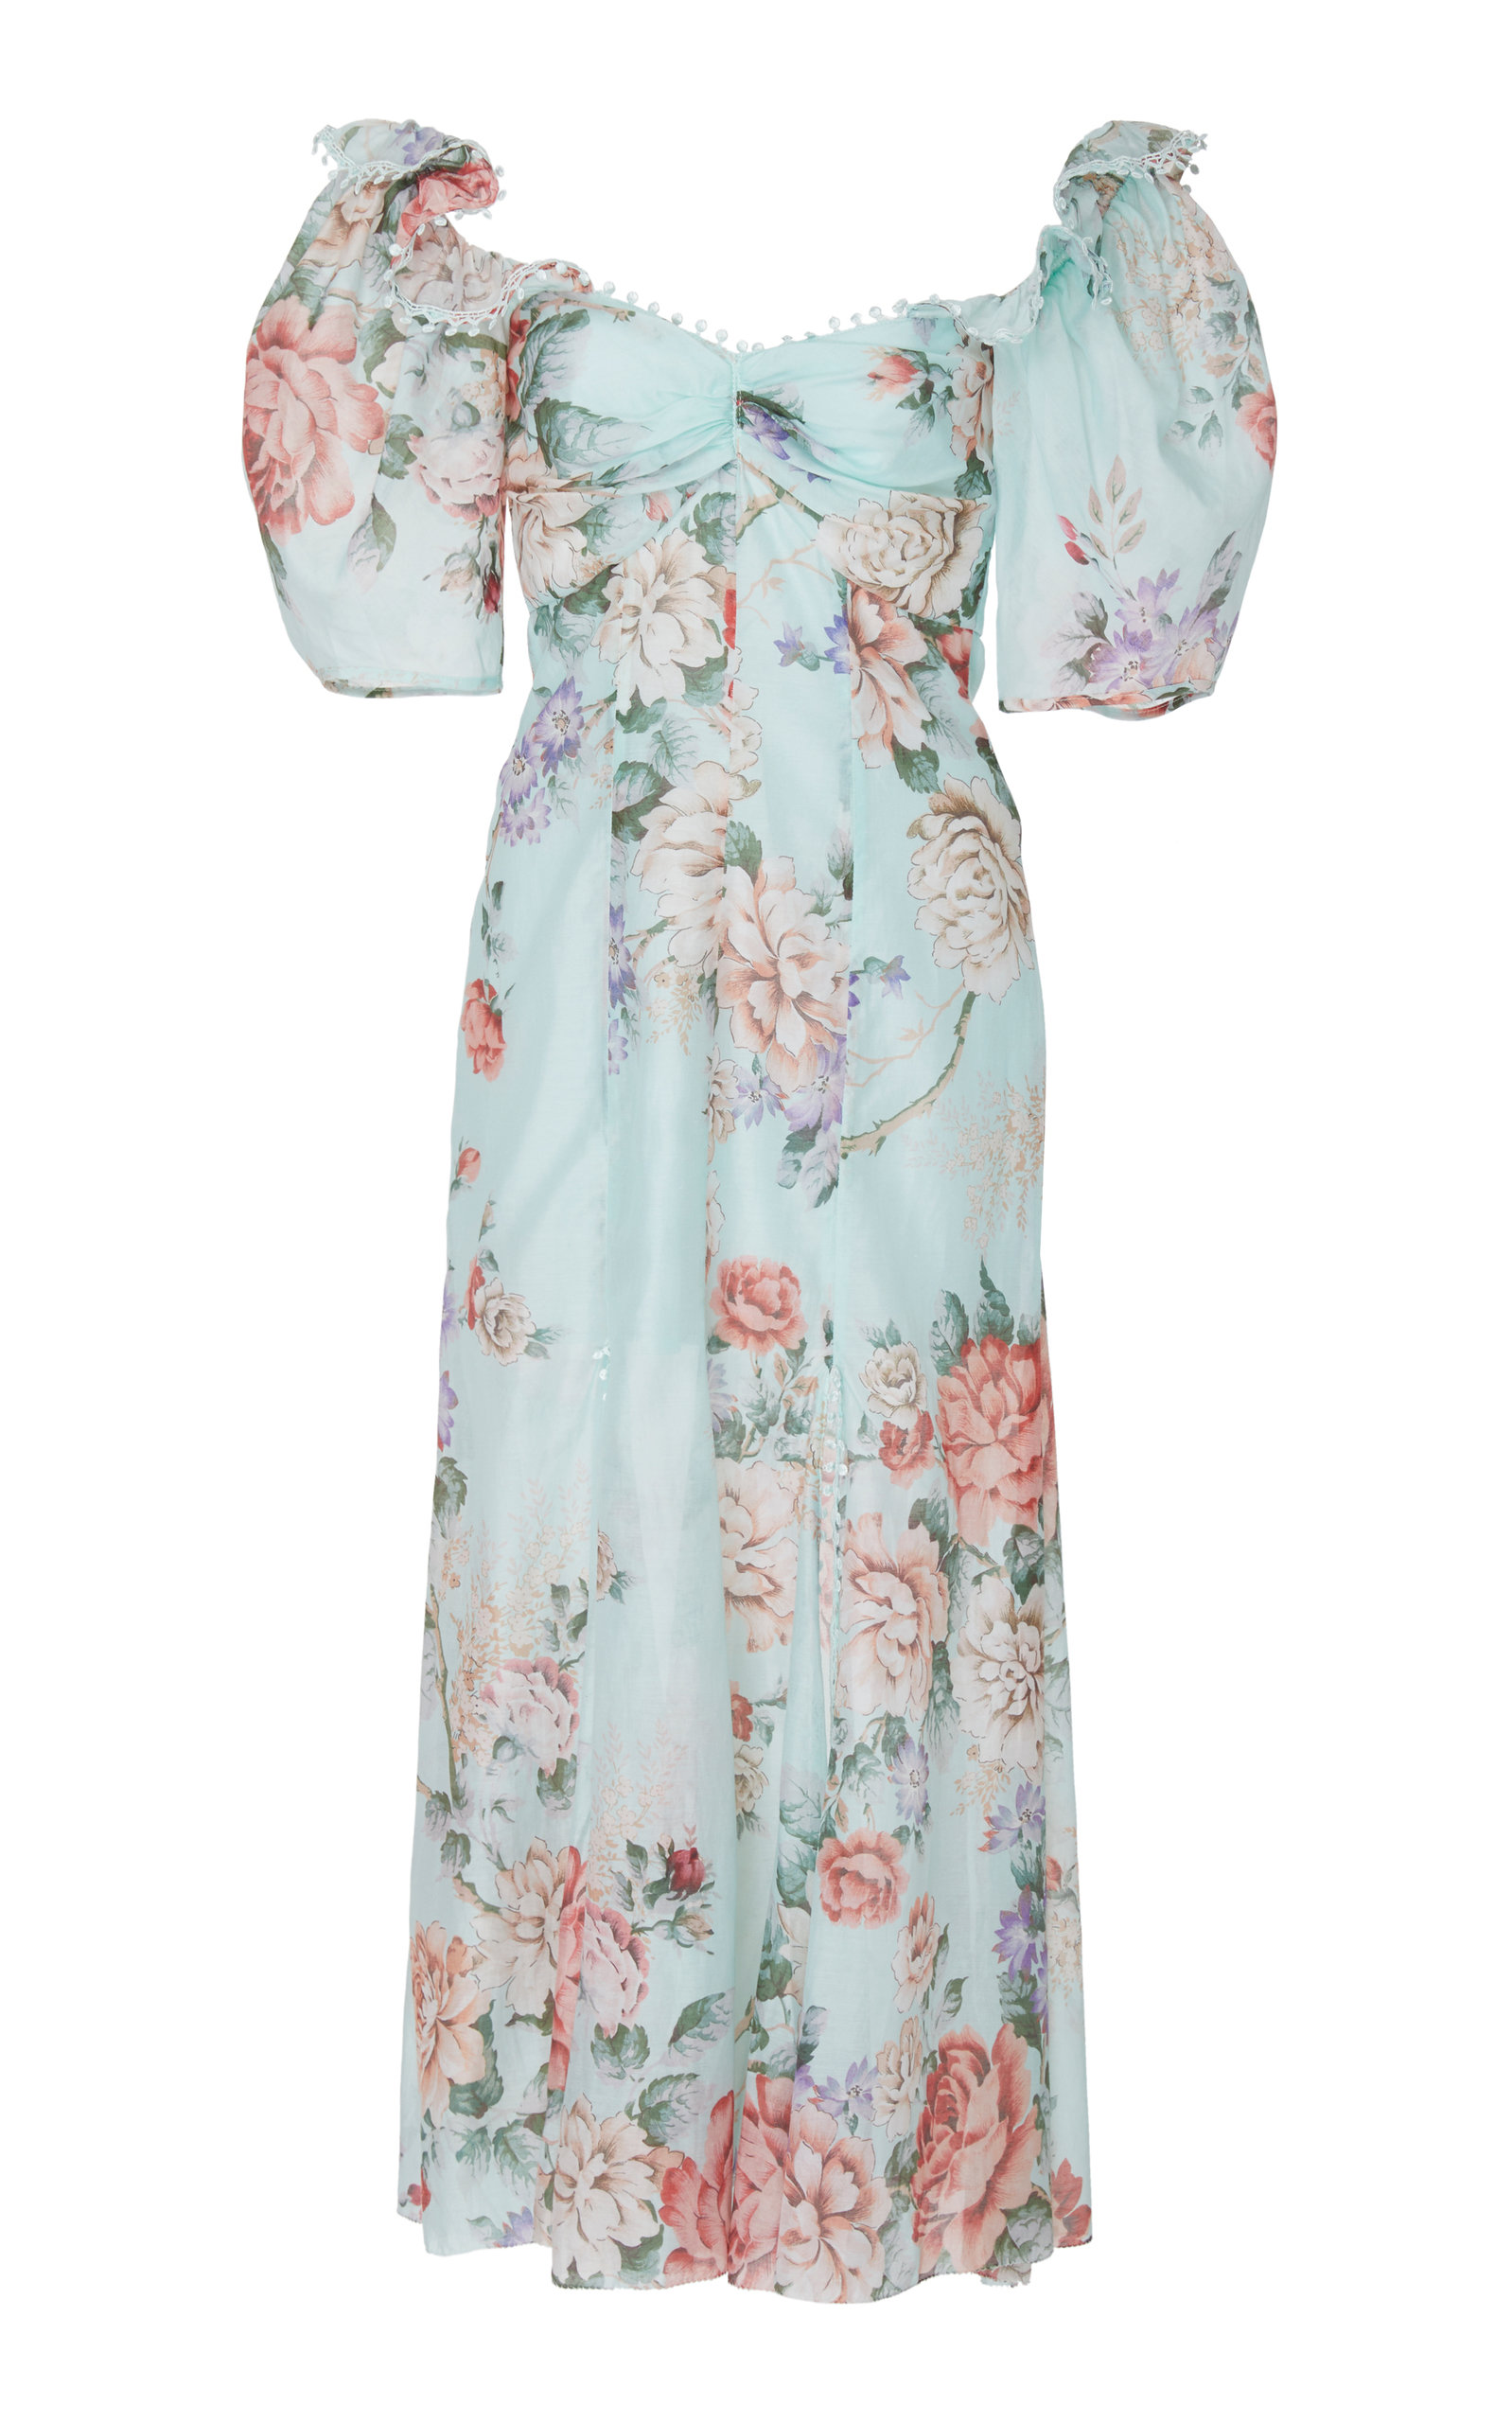 Alice Mccall | Alice McCall Send Me A Postcard Floral Silk Midi Dress | Clouty